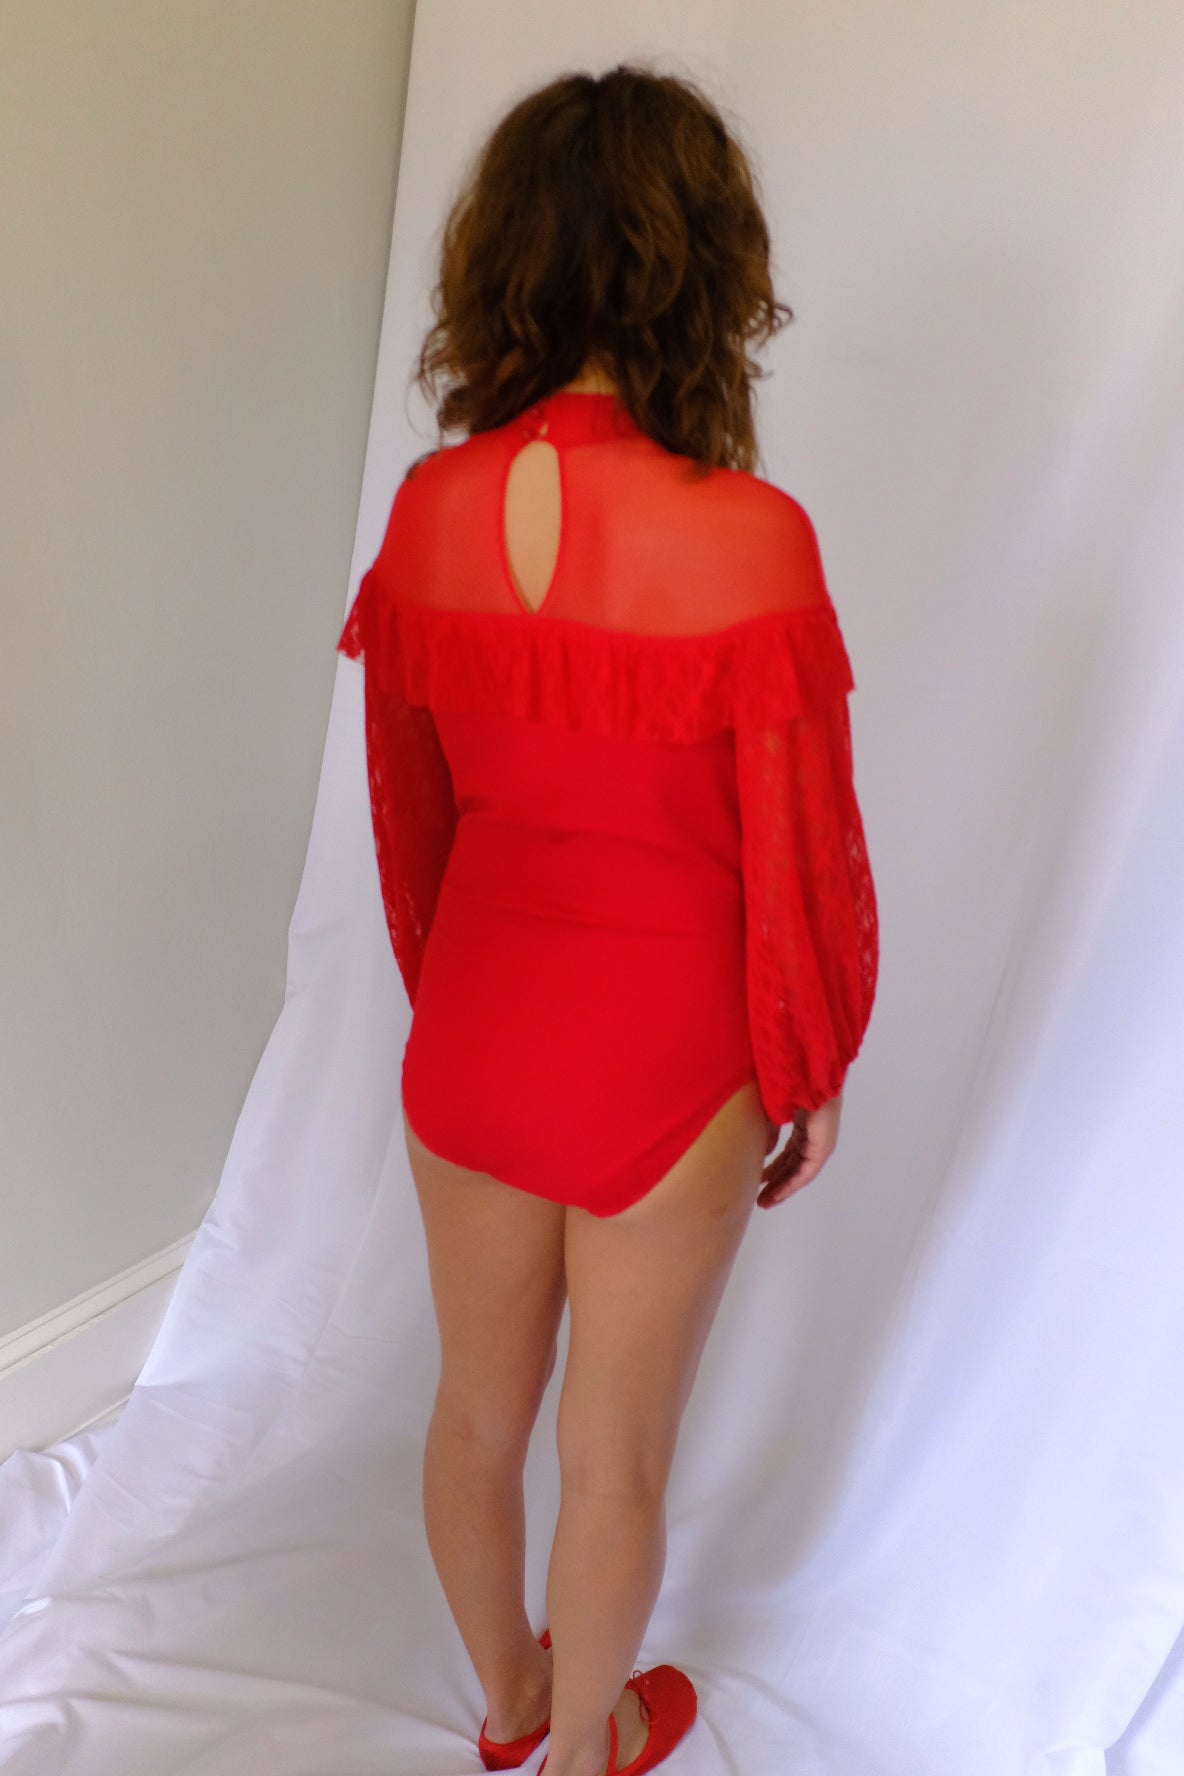 PRE ORDER Gilda Red Lace Bodysuit